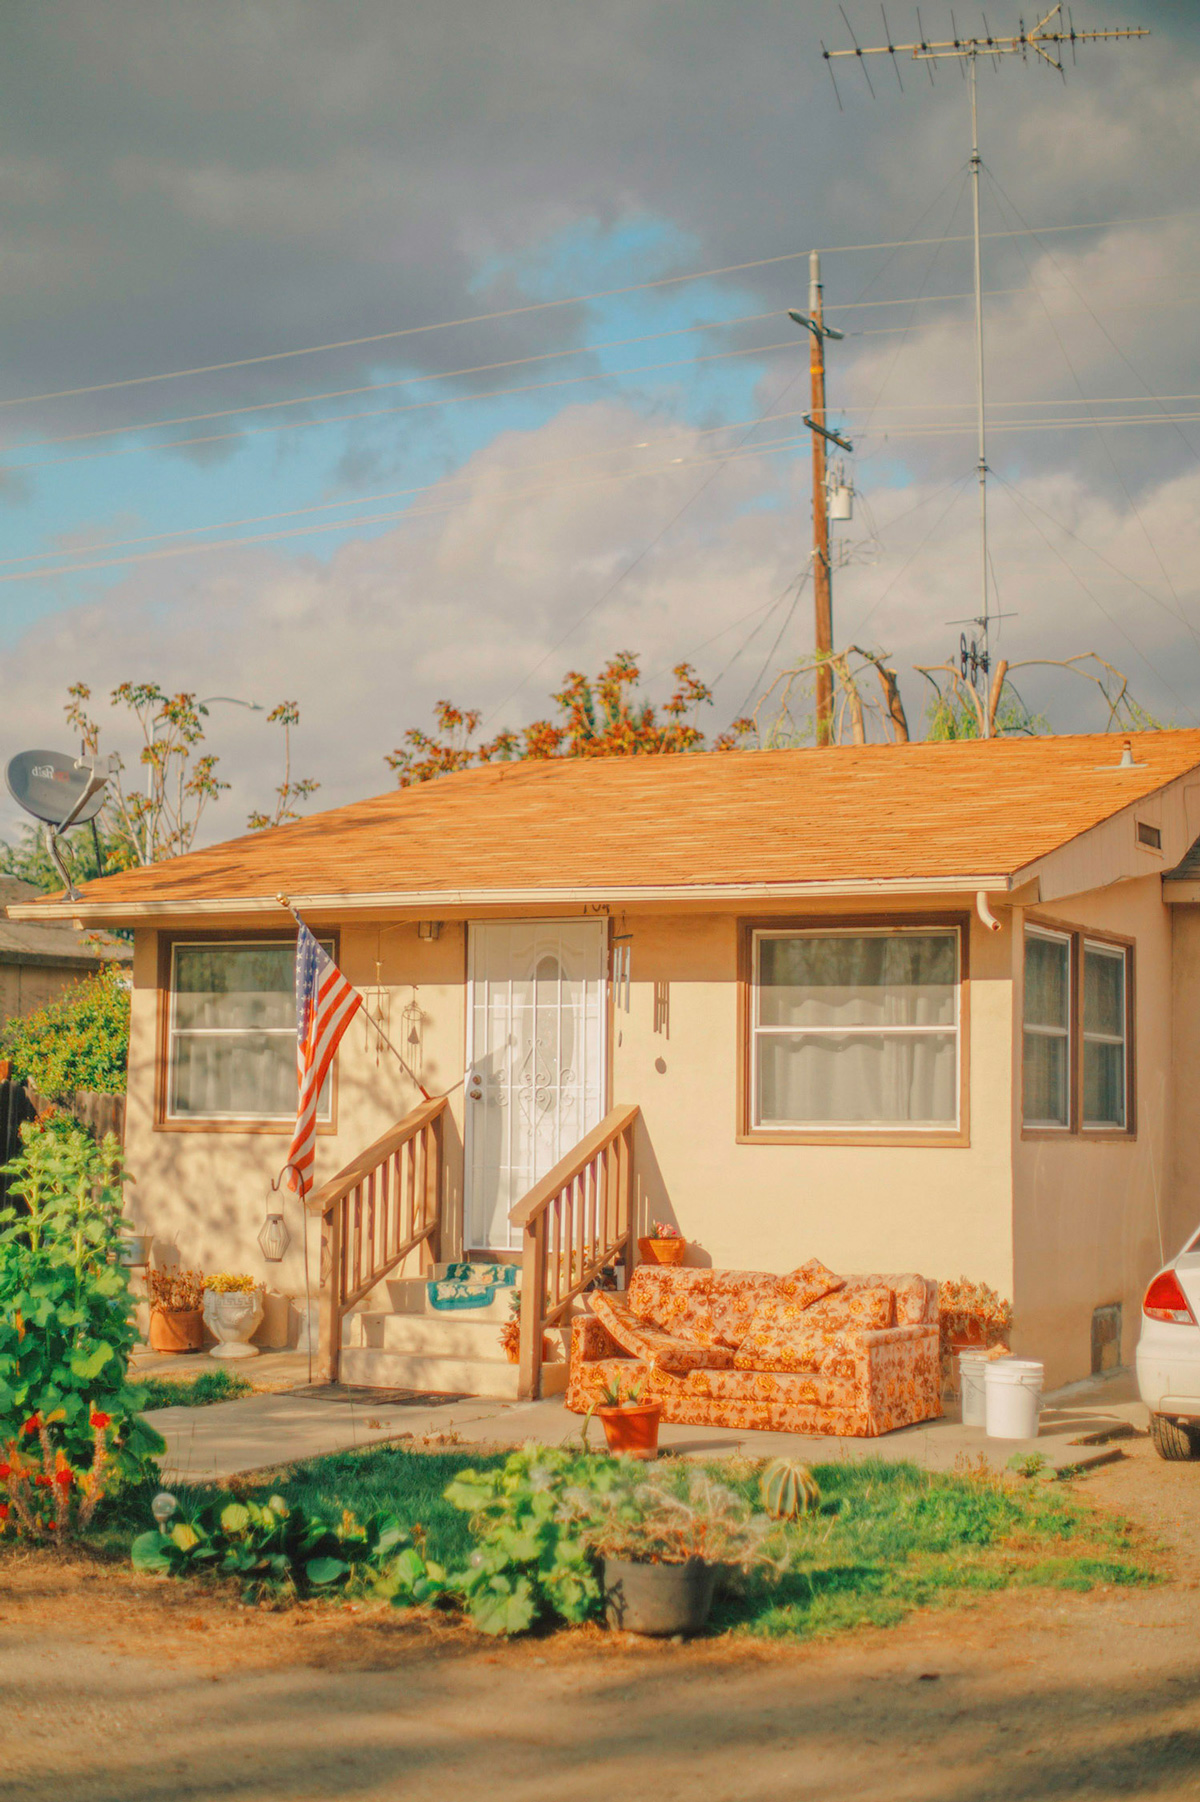 Clay-colored house bathed in sunlight under clouds, with outdoor sofa, US flag, windchimes, satellite dish, and potted garden